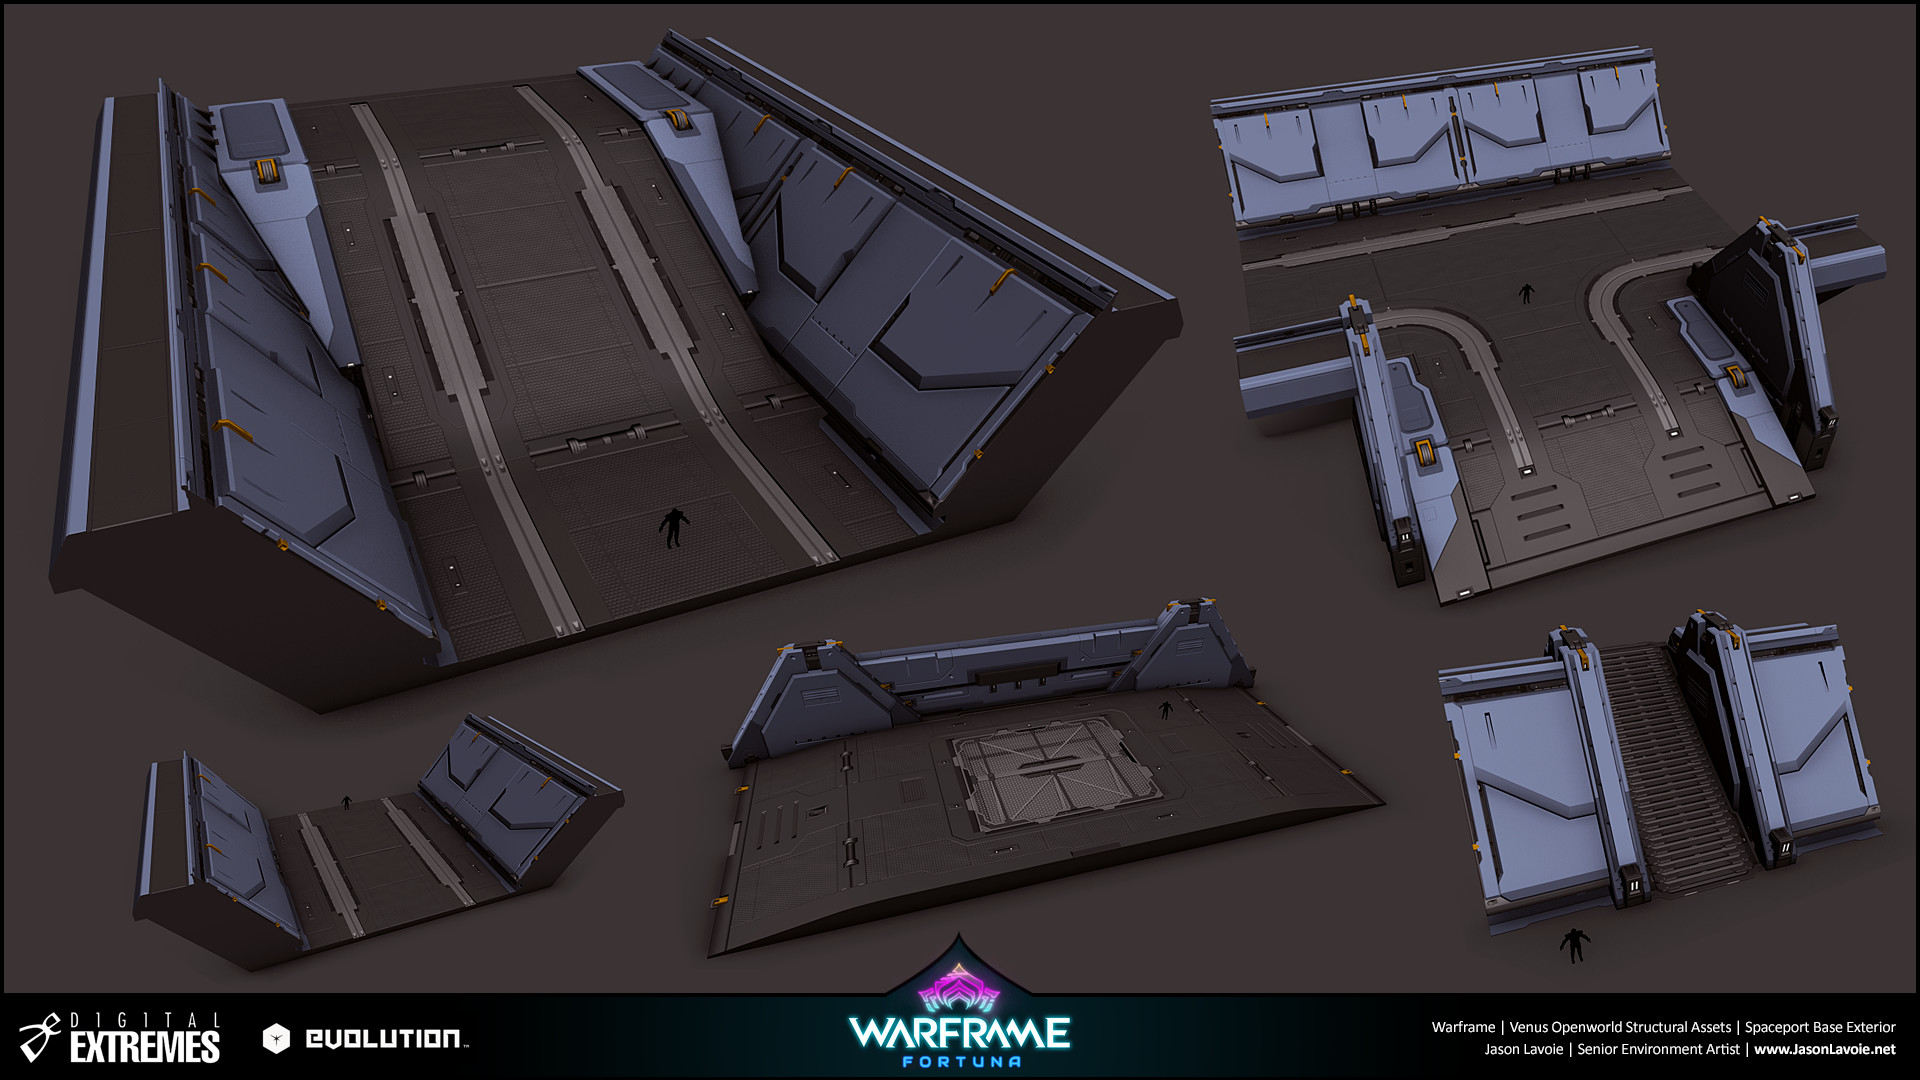 Jason lavoie jasonlavoie warframefortuna spaceportbaseexterior 3dmax trenches